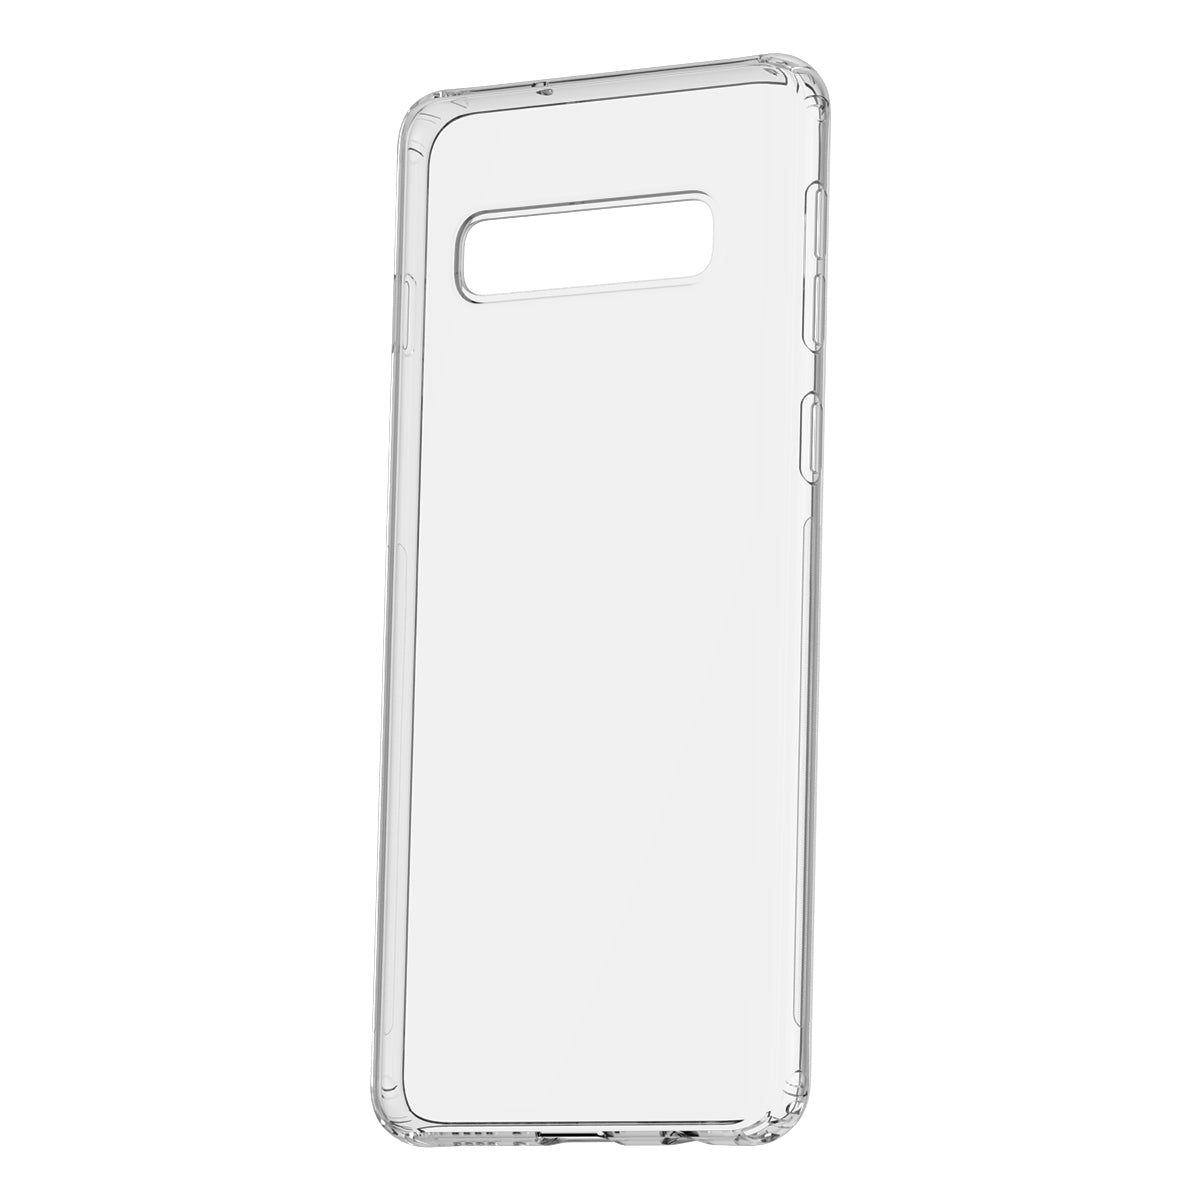 BASEUS Simple Soft Case for Samsung S10+ / S10